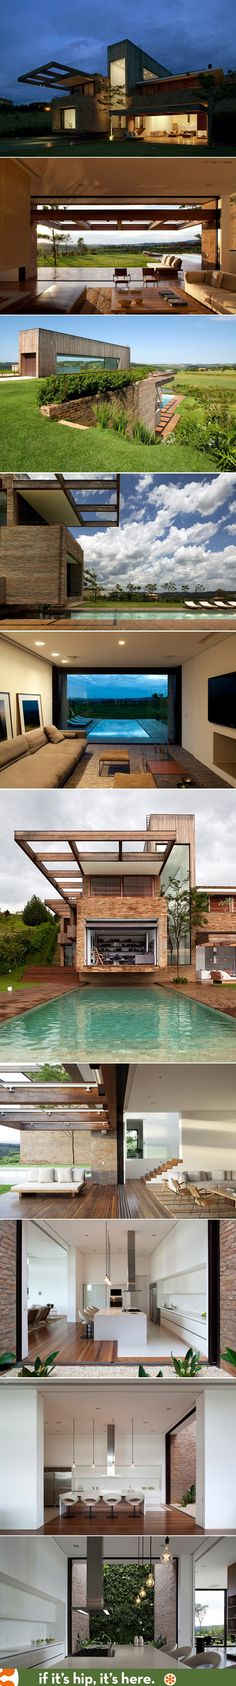 This incredible modern home and pool by Arthur Casas sits on a golf course in Sao Paolo.   http://www.ifitshipitshere.com/the-mp-quinta-da-baronesa/